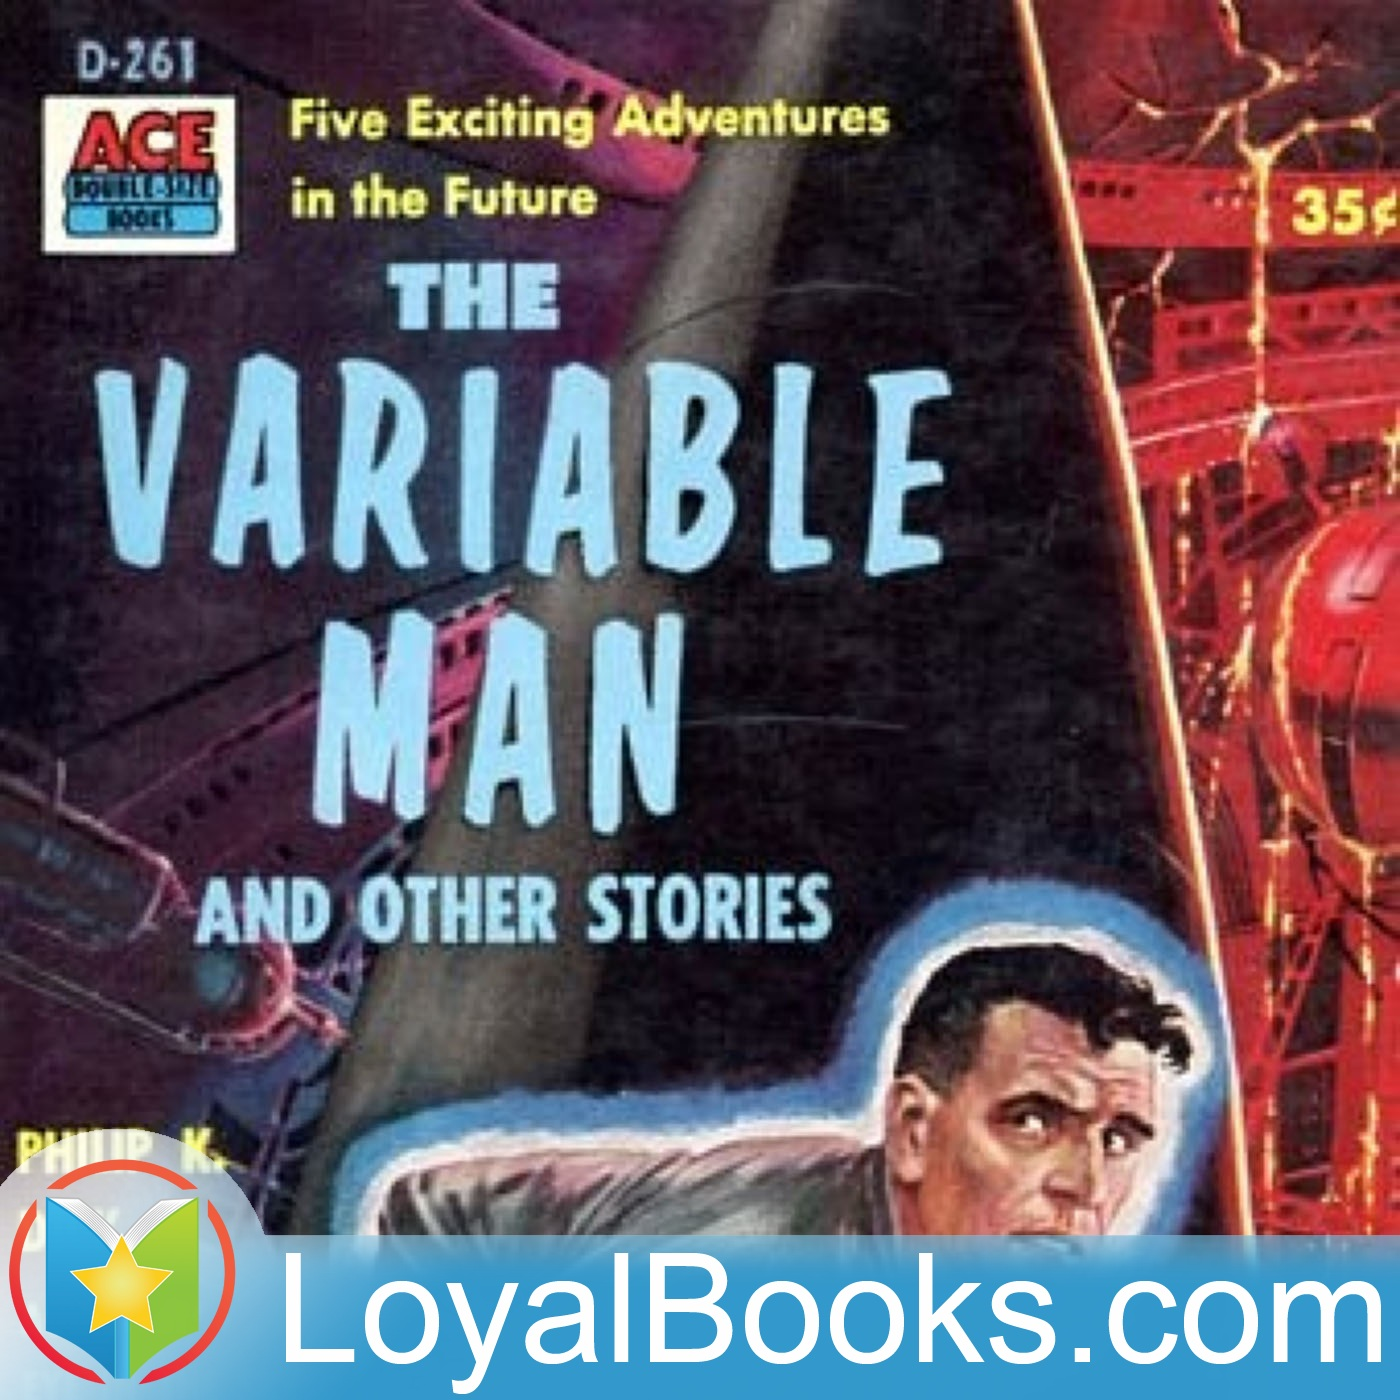 <![CDATA[The Variable Man by Philip K. Dick]]>